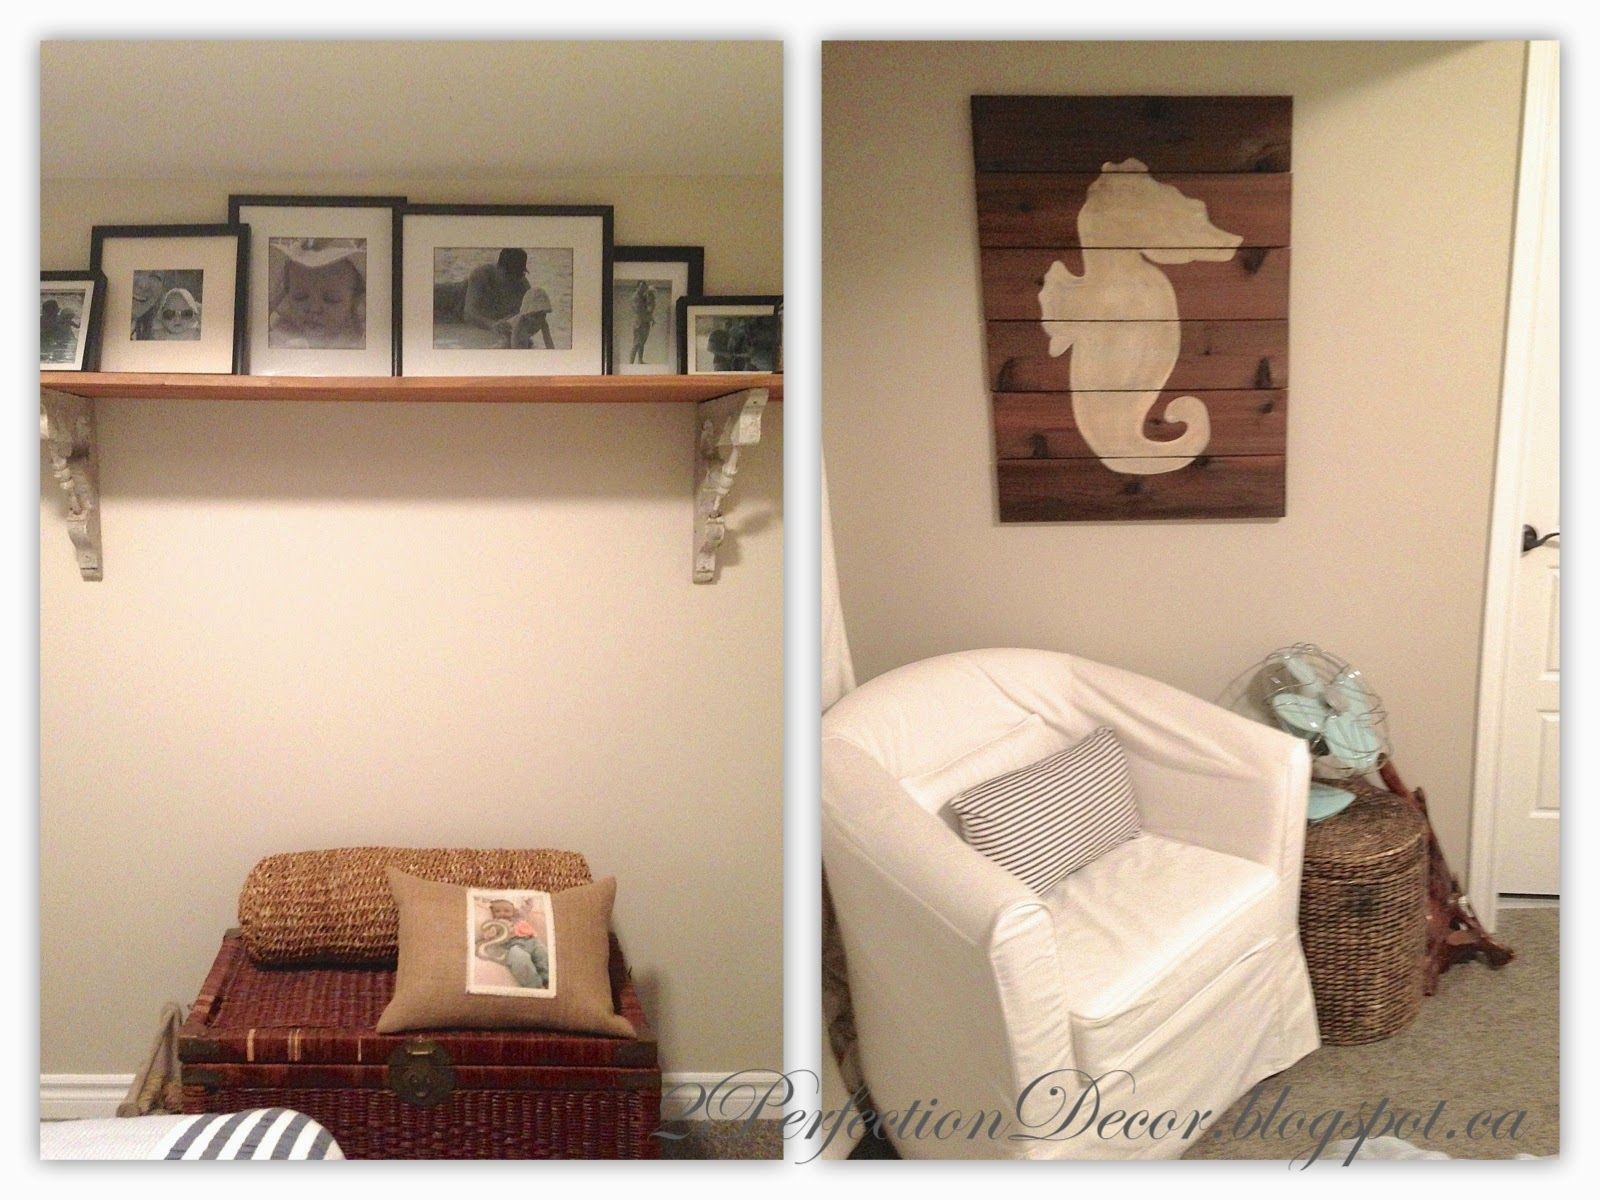 2perfection Decor Basement Coastal Bathroom Reveal: 2Perfection Decor: Our Basement Guest Bedroom Reveal